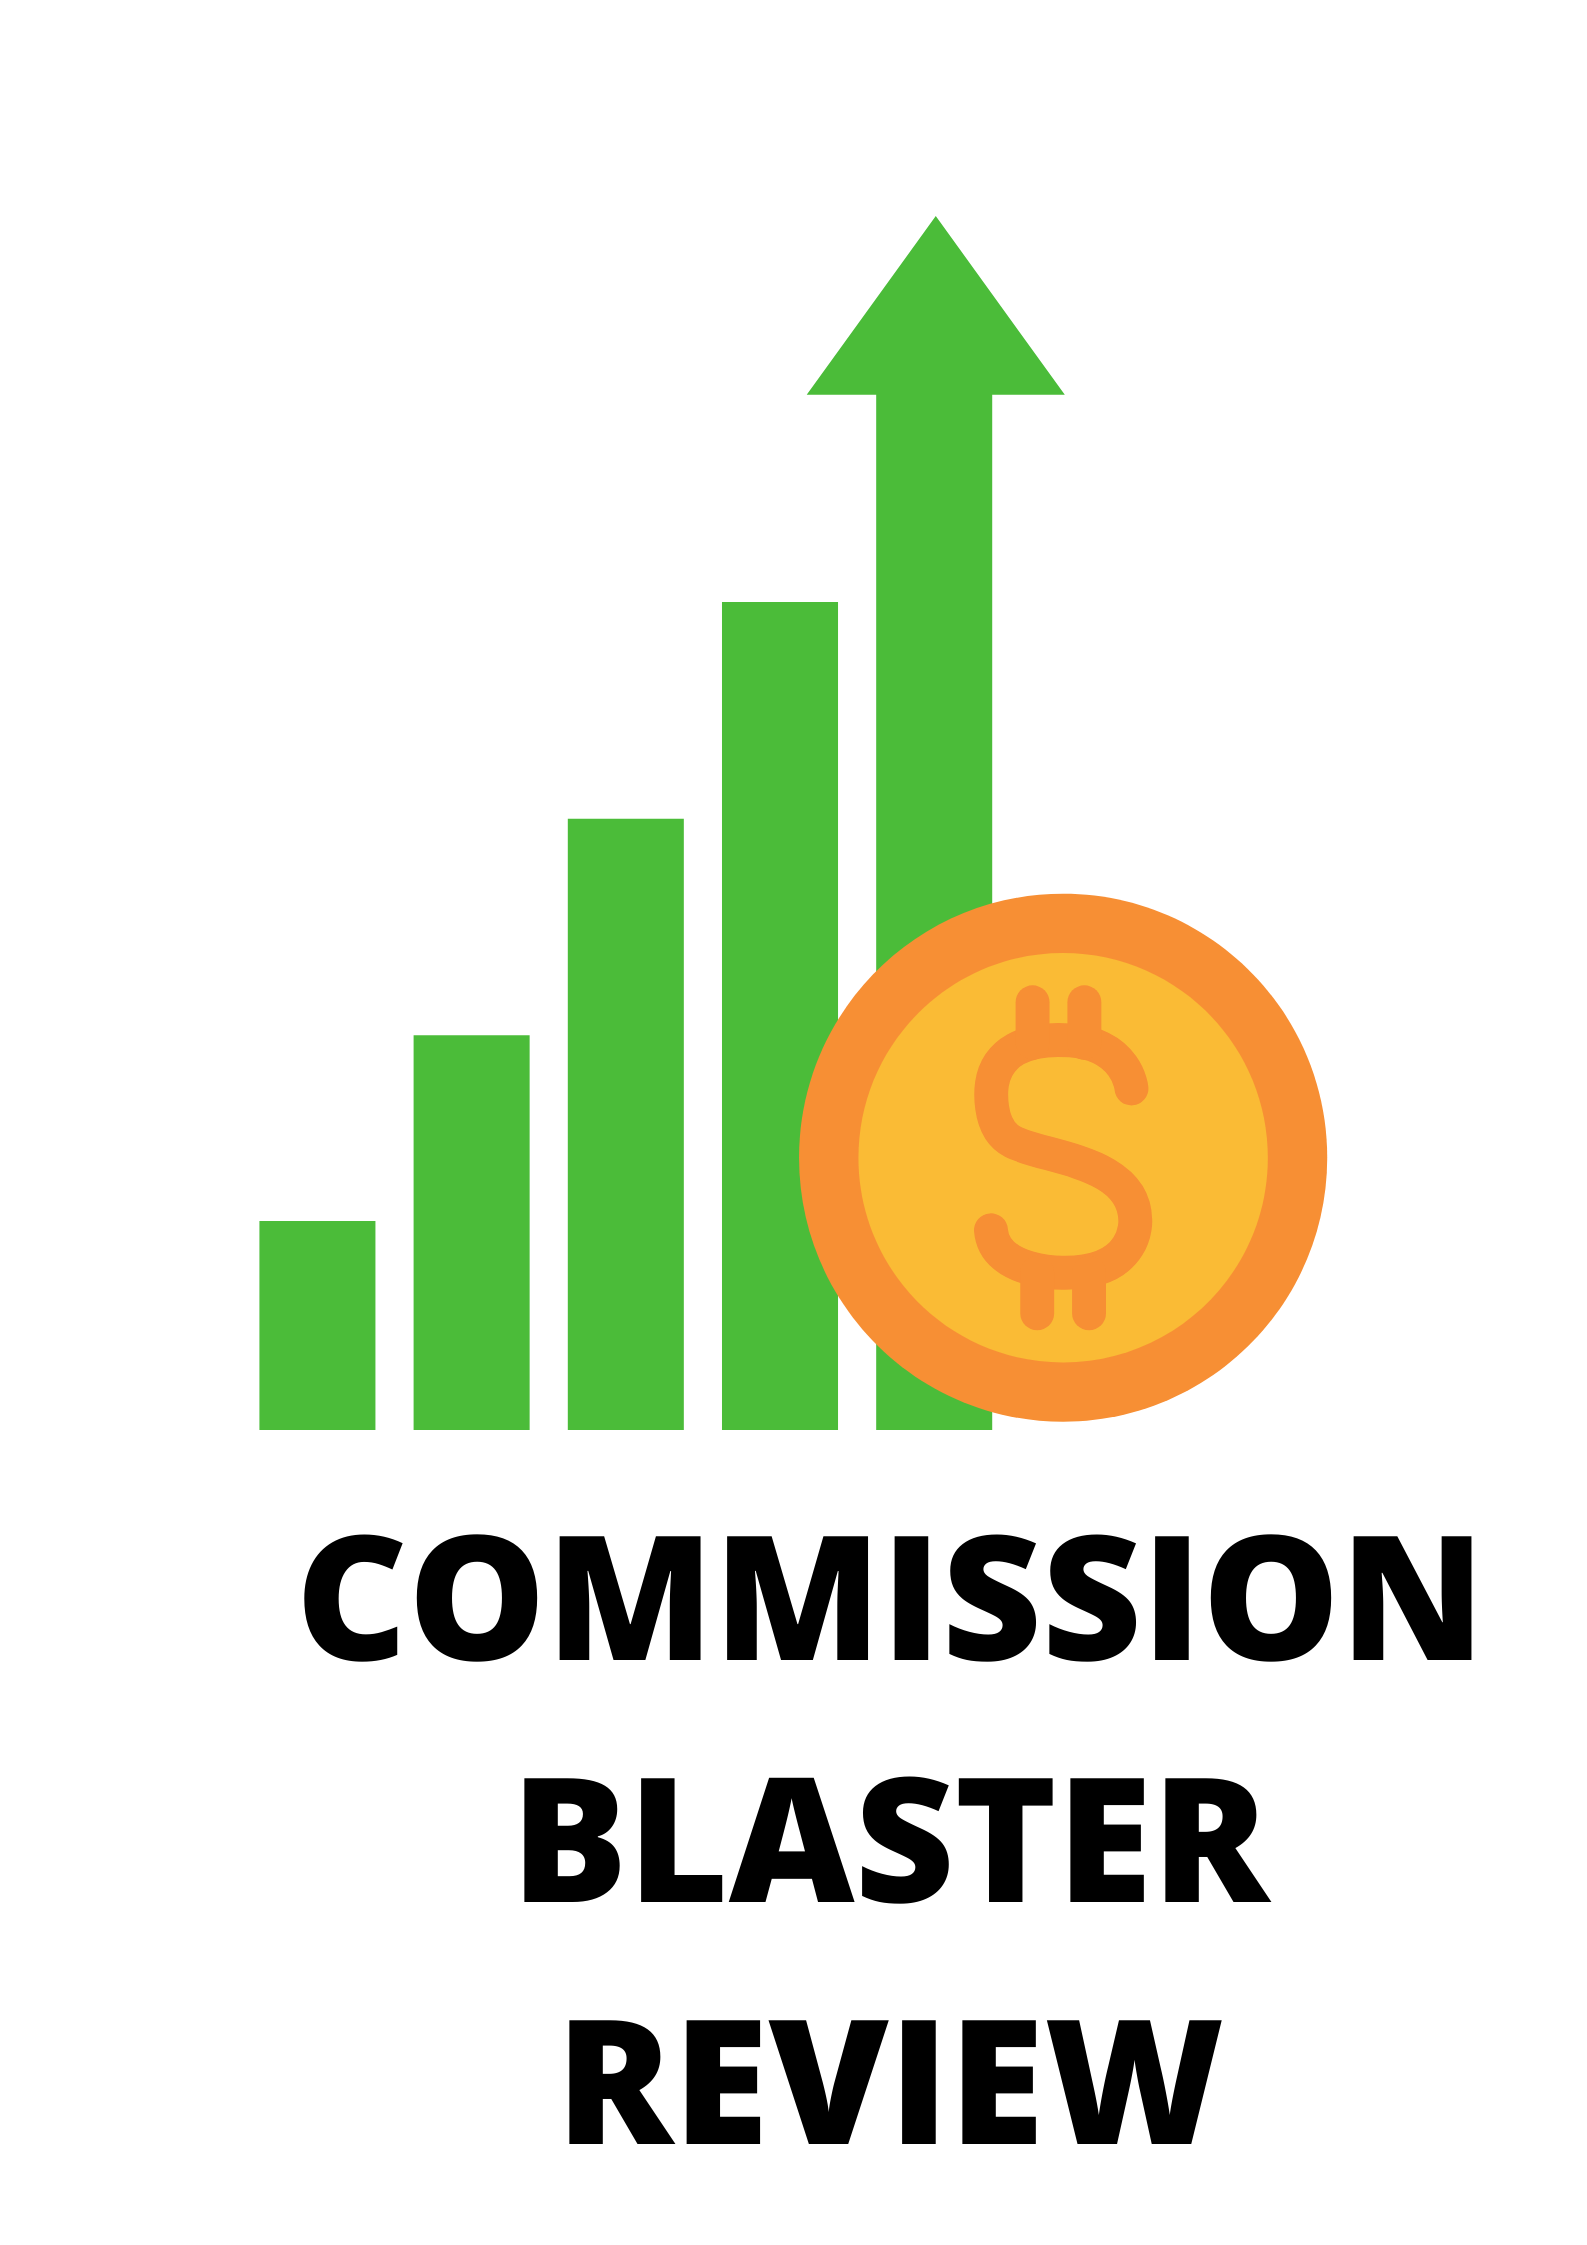 Commission Blaster Review